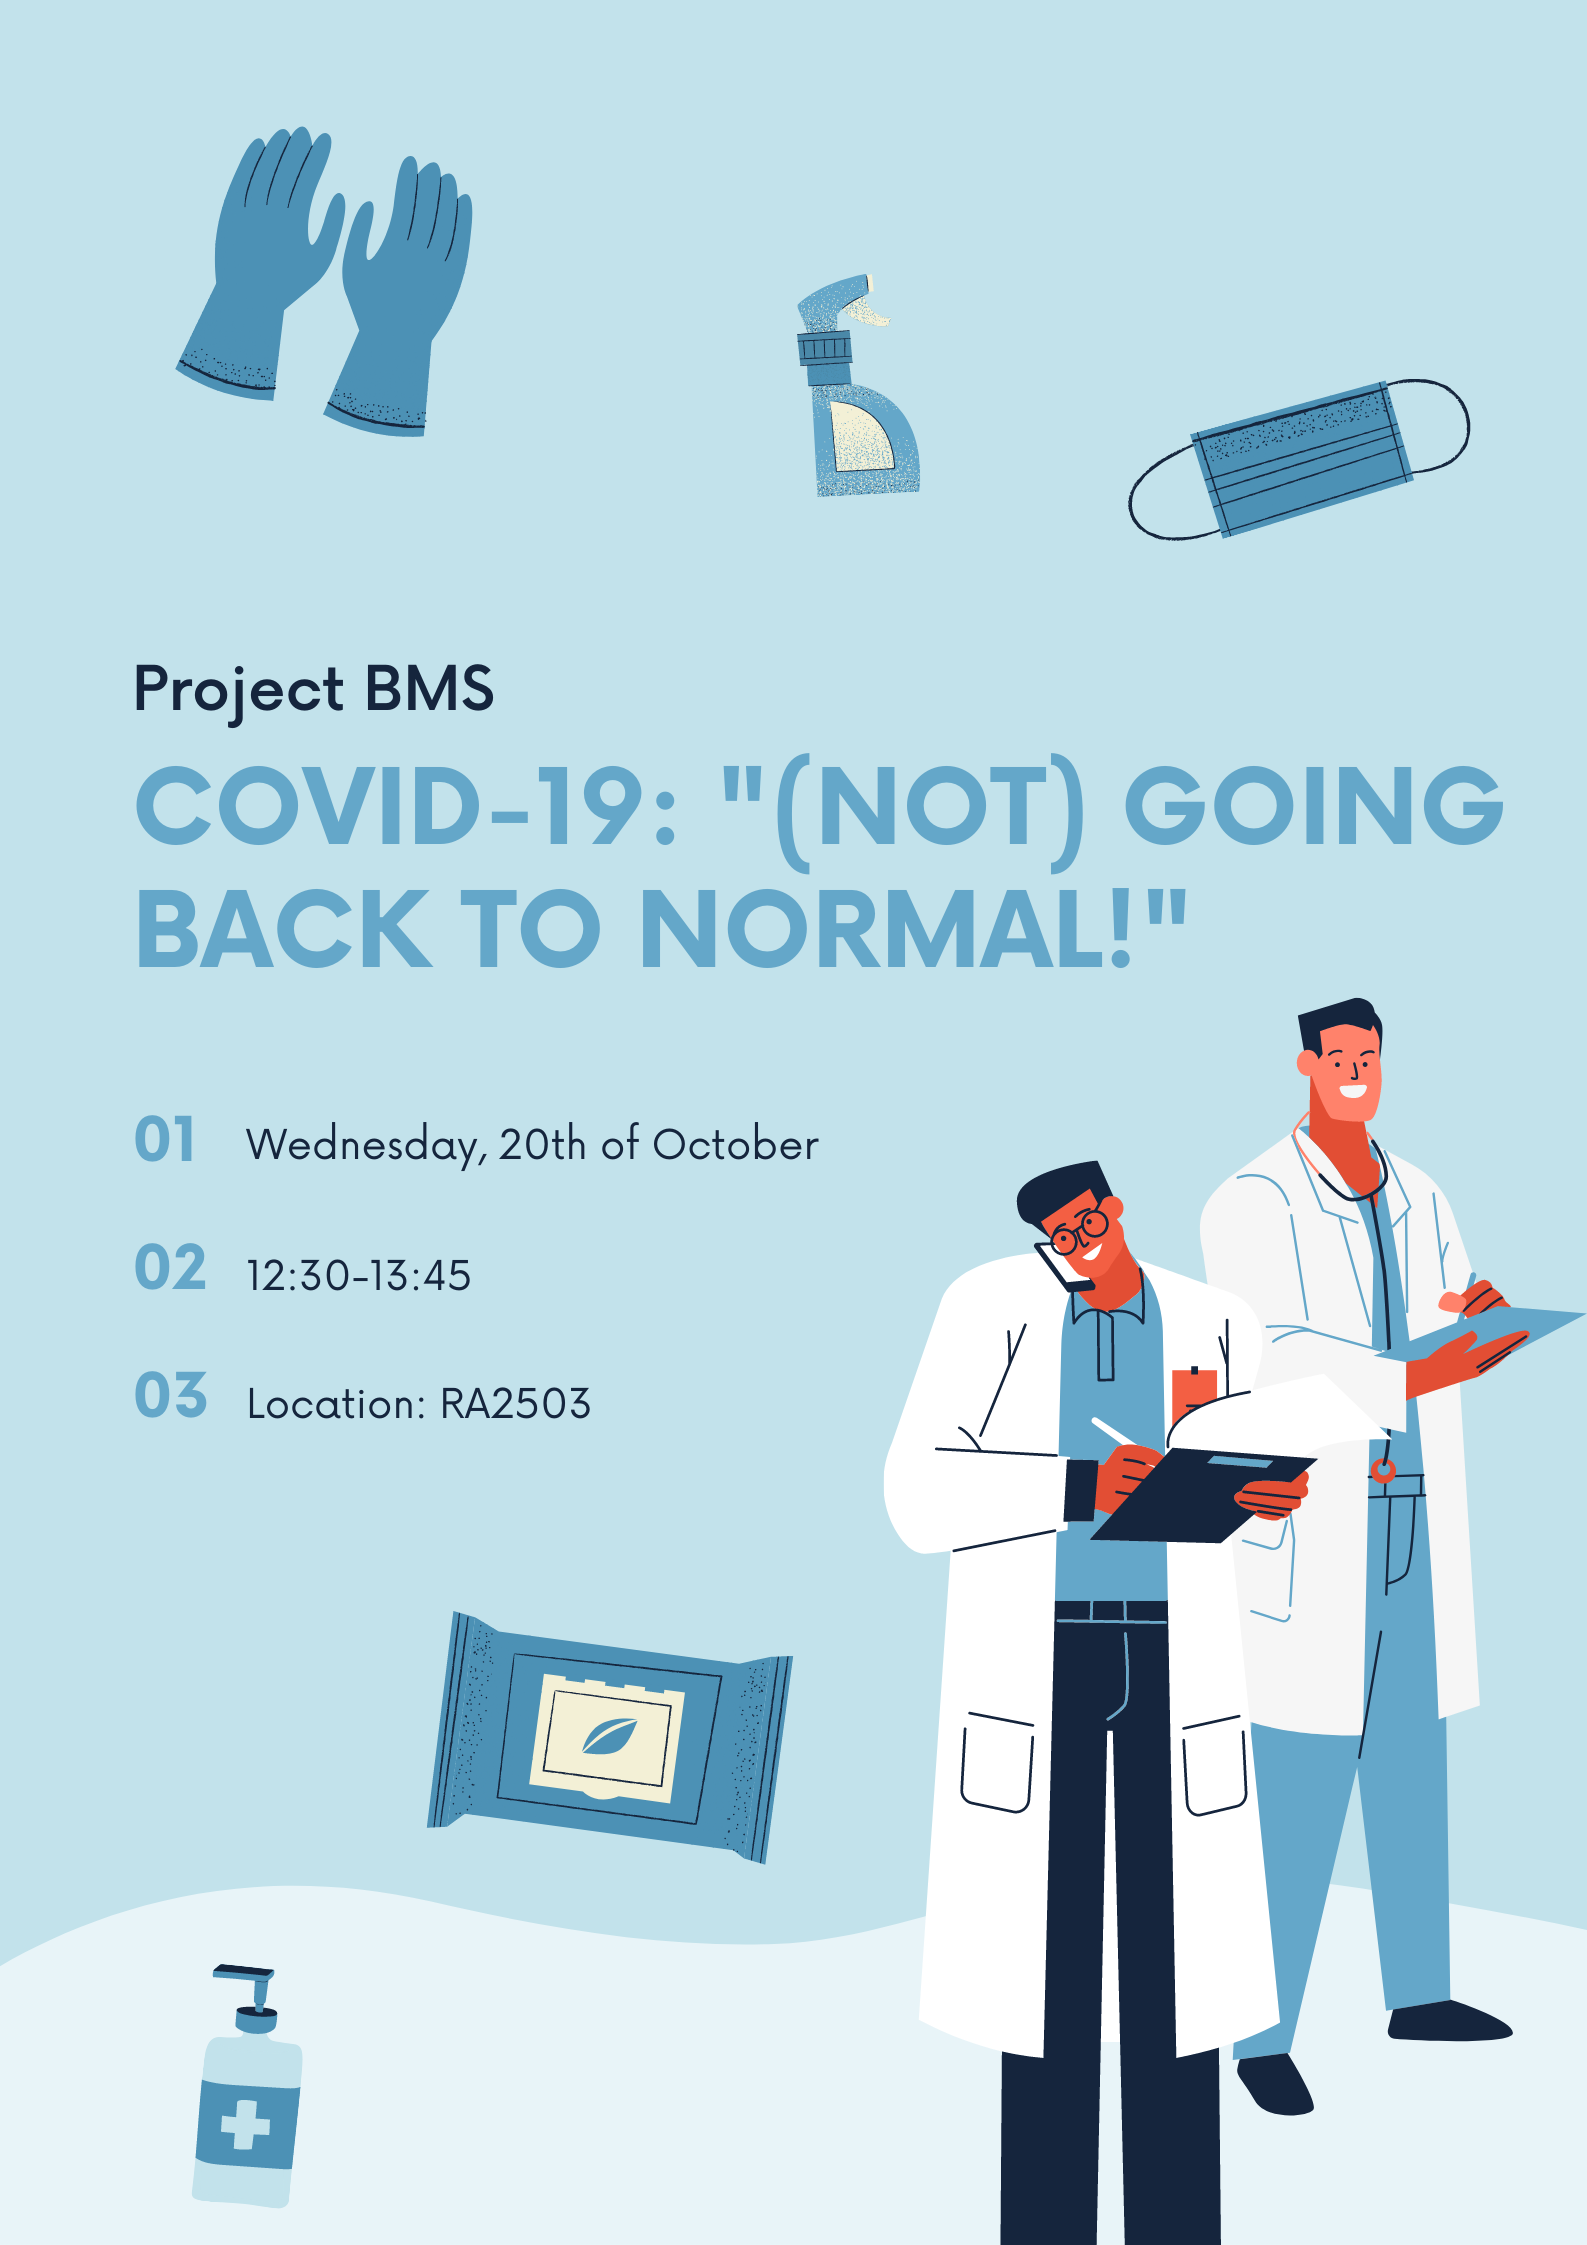 """Project BMS: """"COVID-19: (not) going back to normal!"""""""